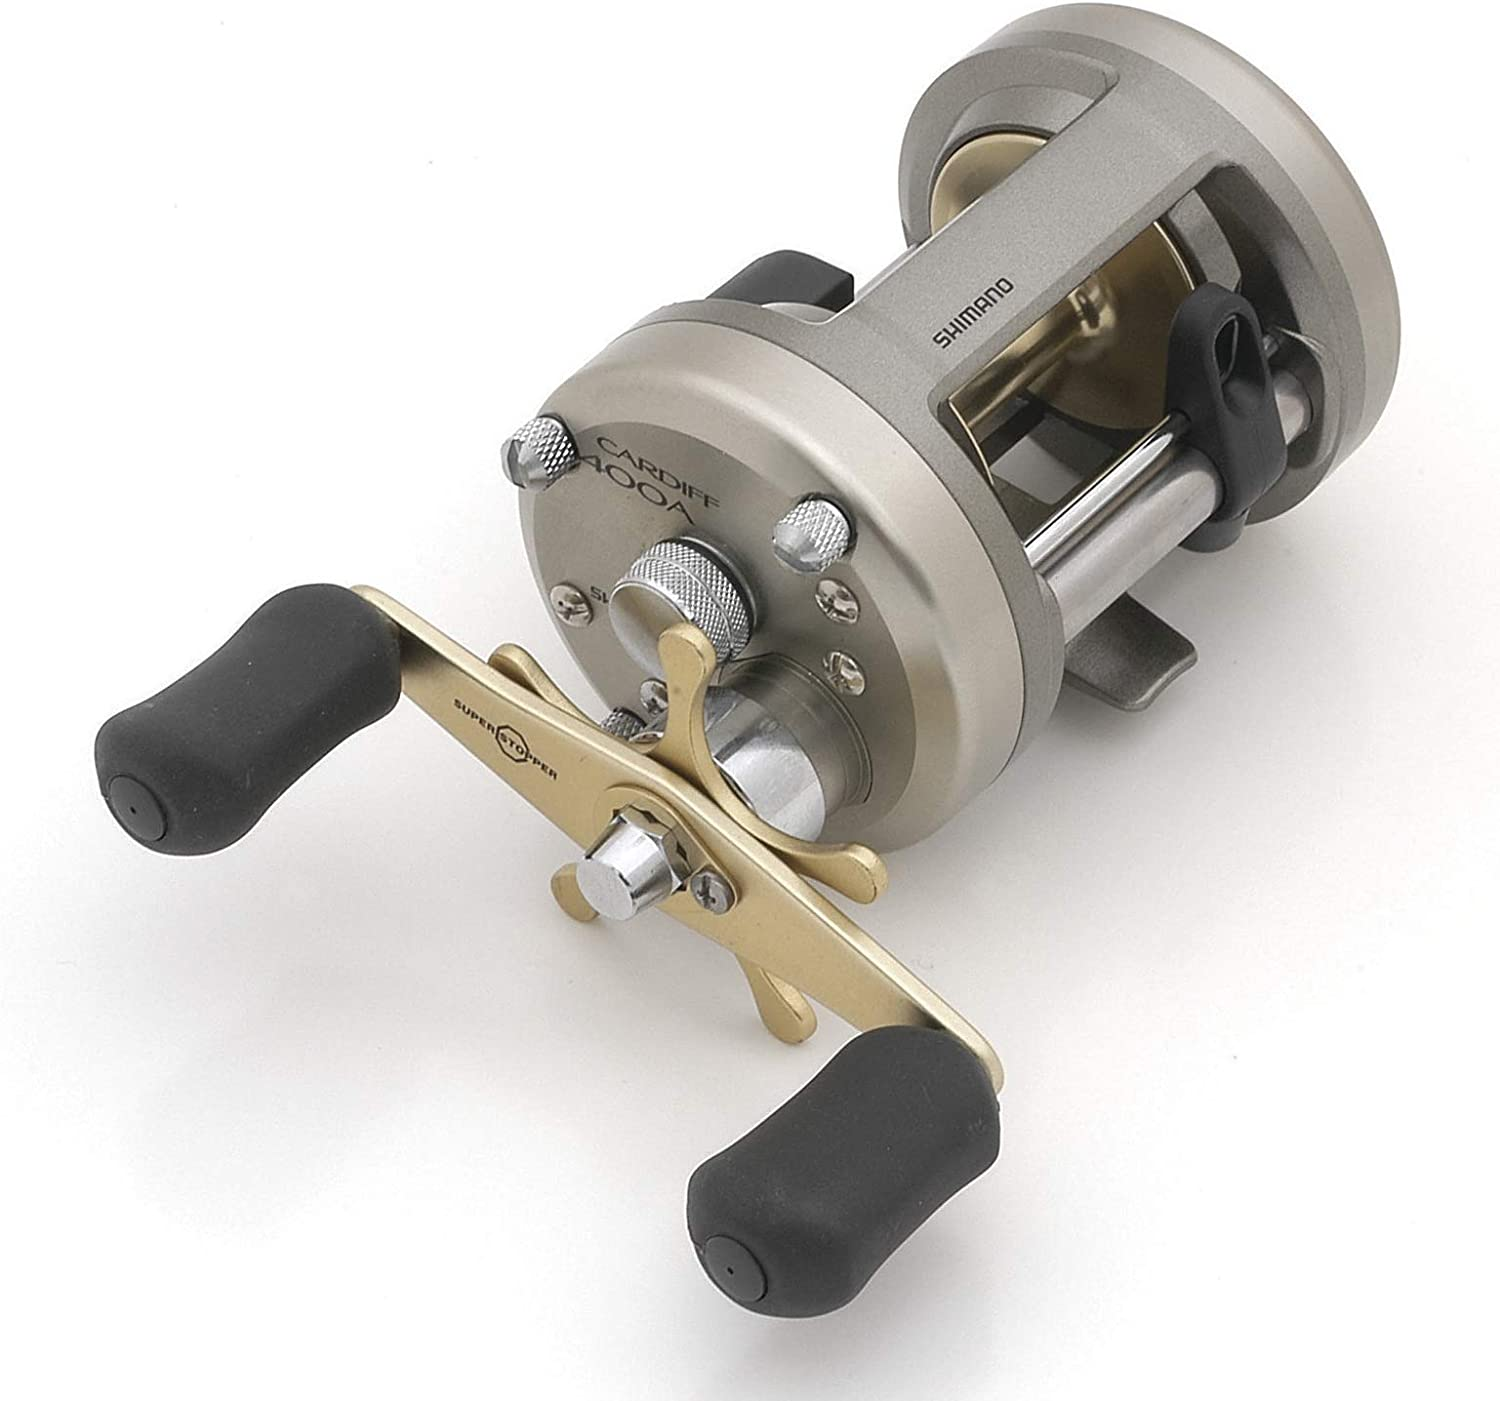 Levelwind Guide USED SHIMANO REEL PART Calcutta 400 Baitcasting Reel